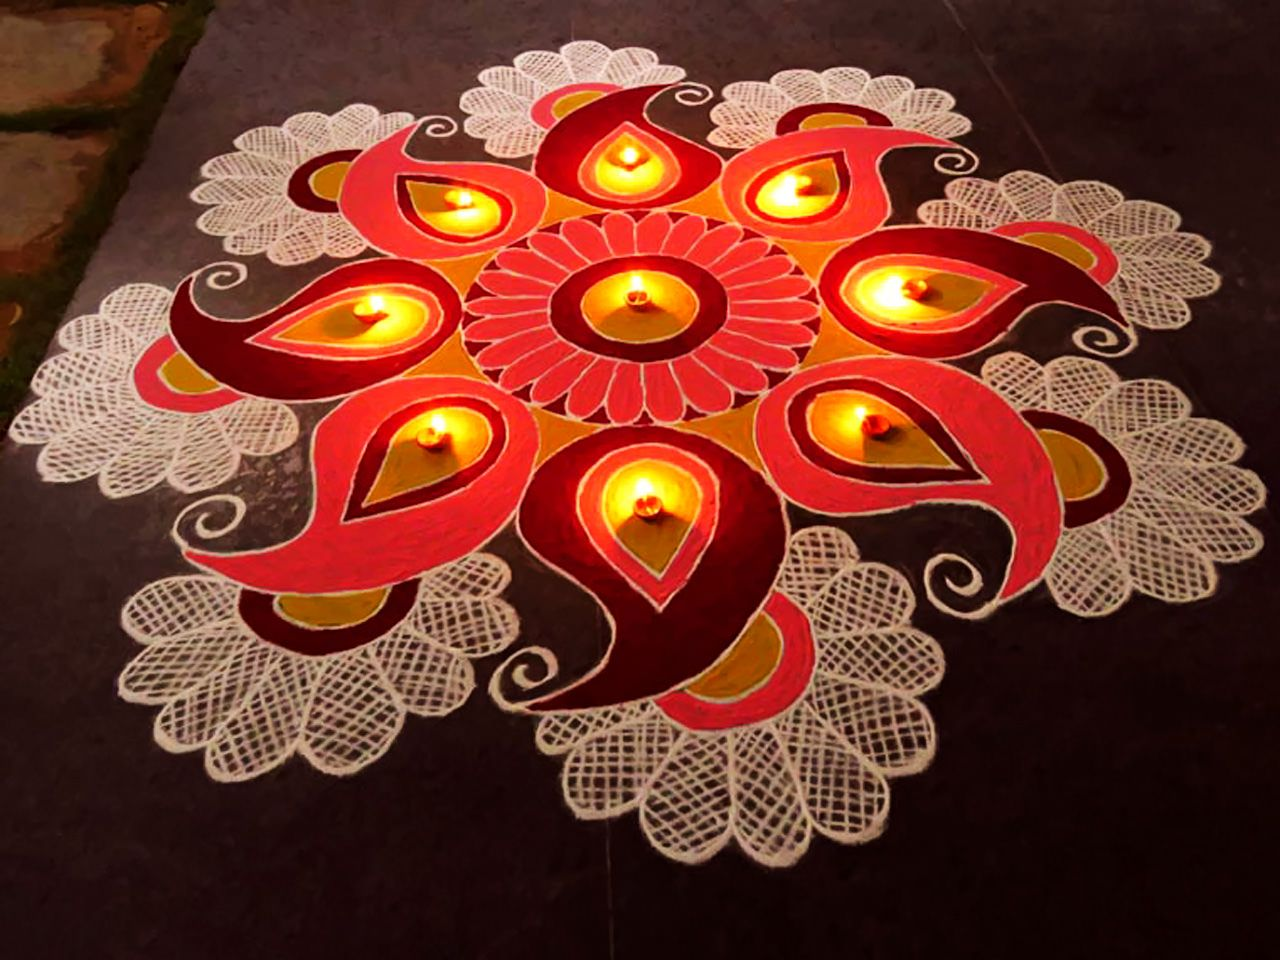 These Are Few Best Rangoli Designs For Competition Theme Based Hard Pattern Diwali Use It In College School Office And Home